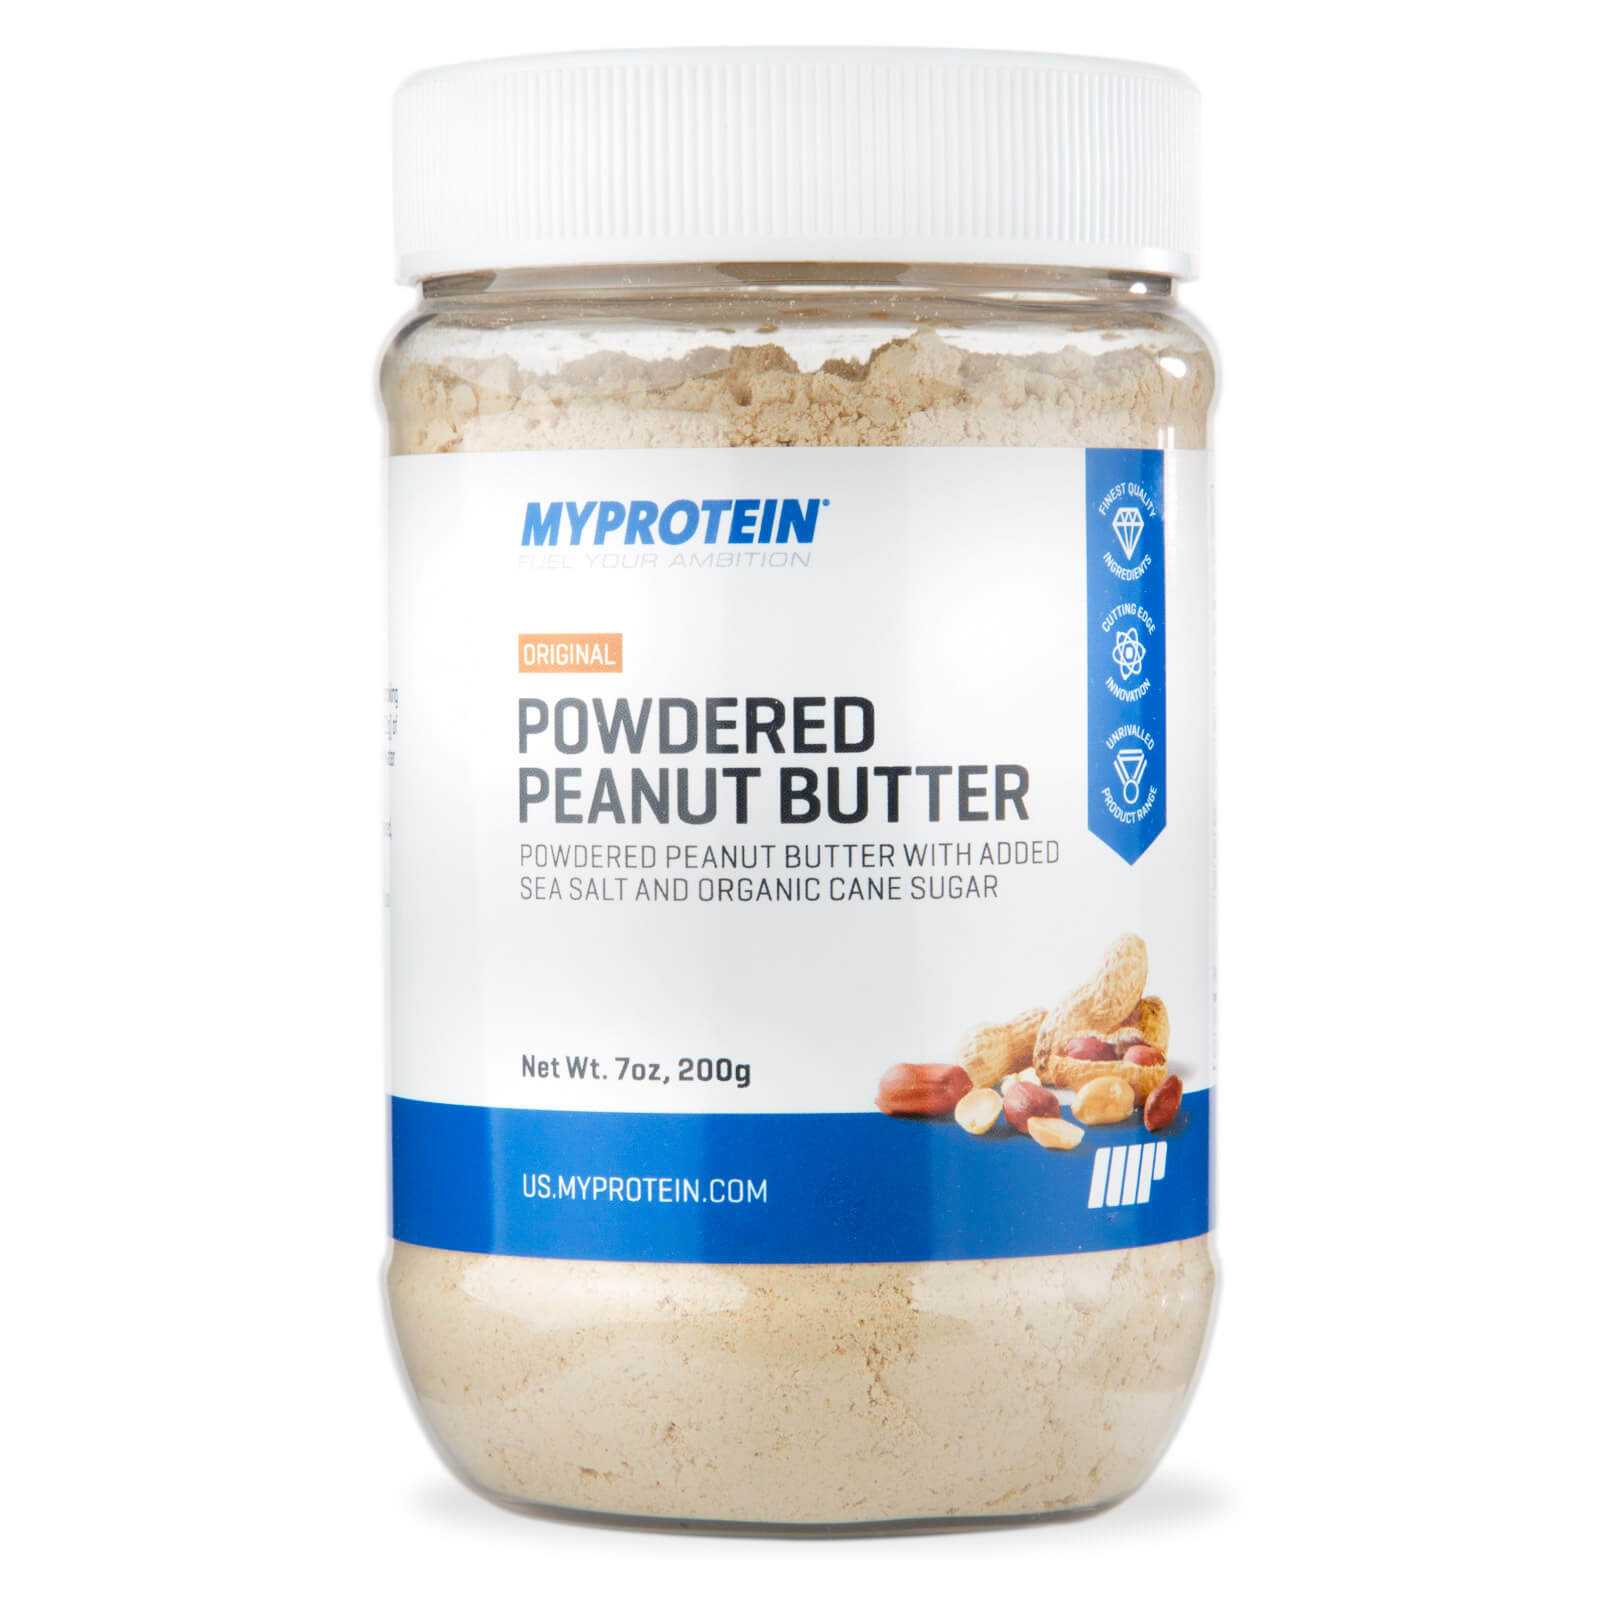 Powdered Peanut Butter - Original - 7 Oz (USA)